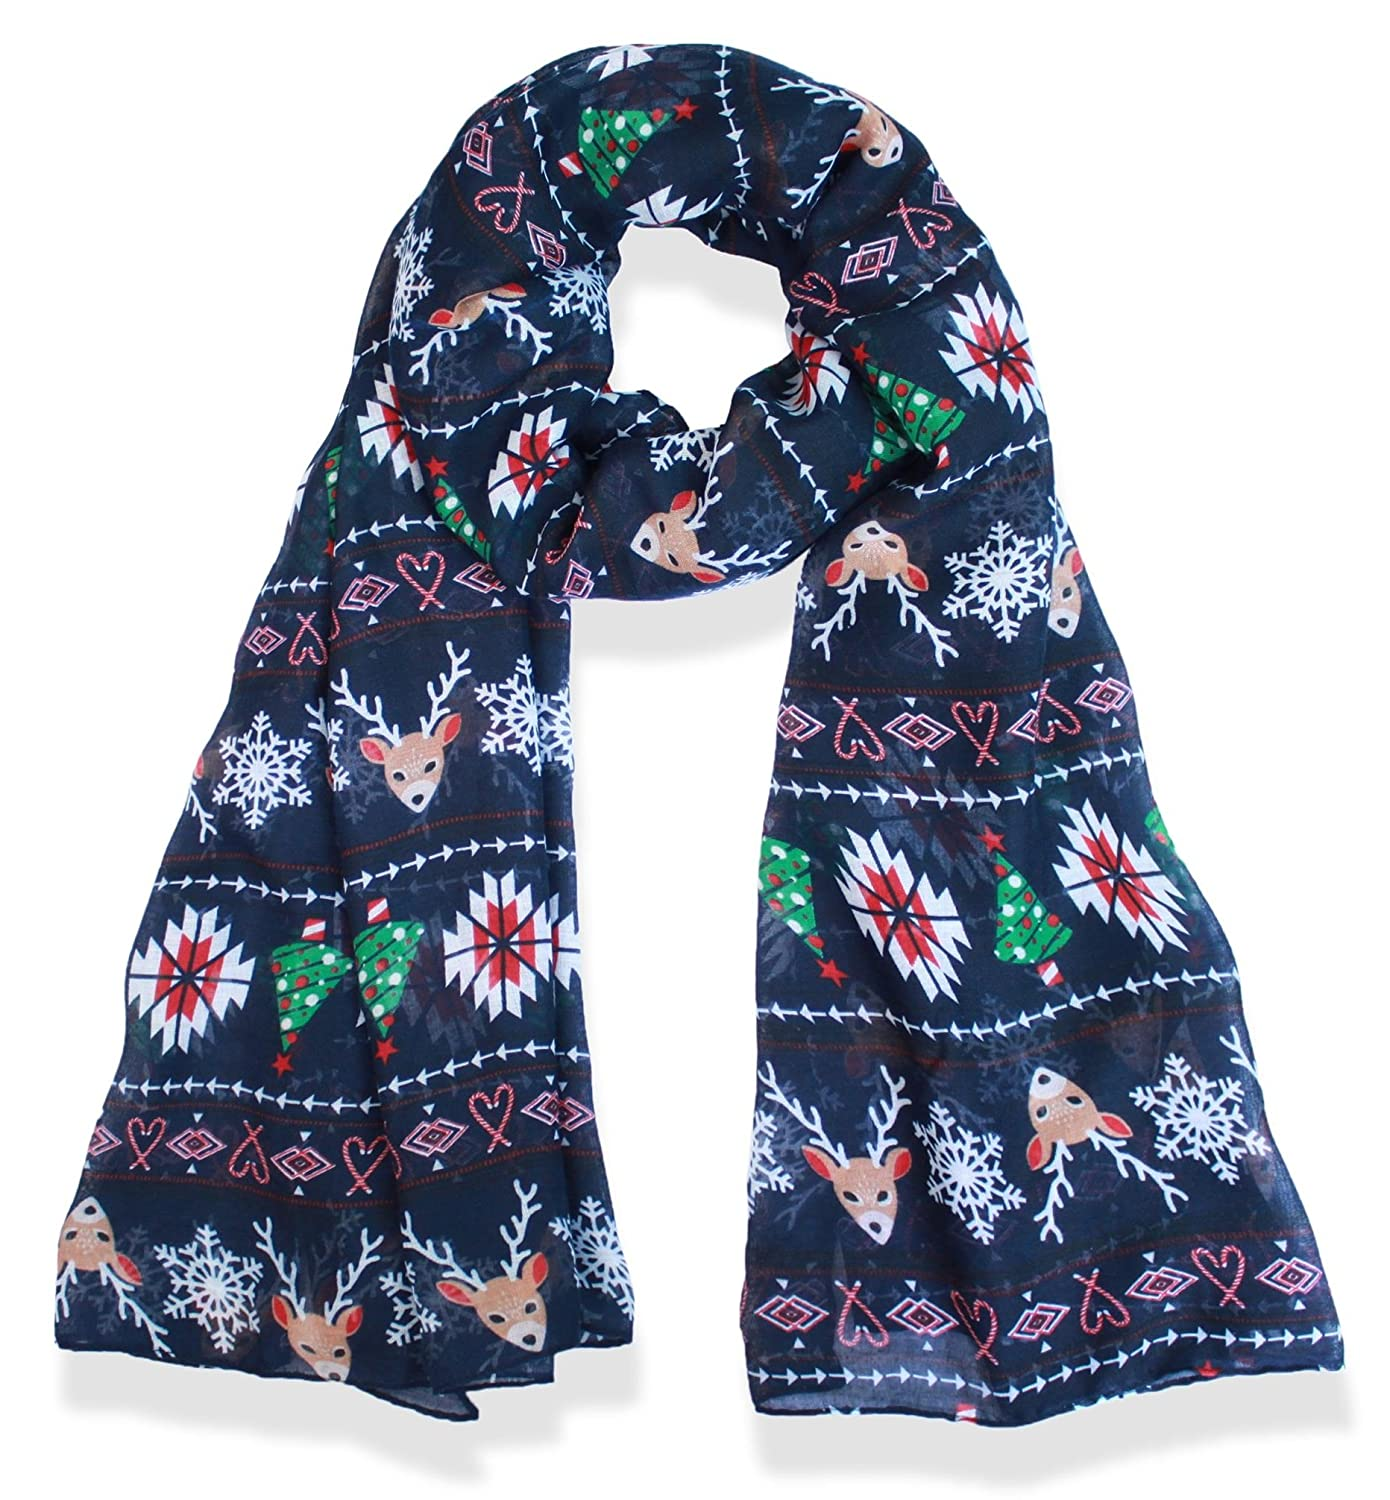 V28 Candy Cane Print Womens Scarf Christmas Gift Lightweight